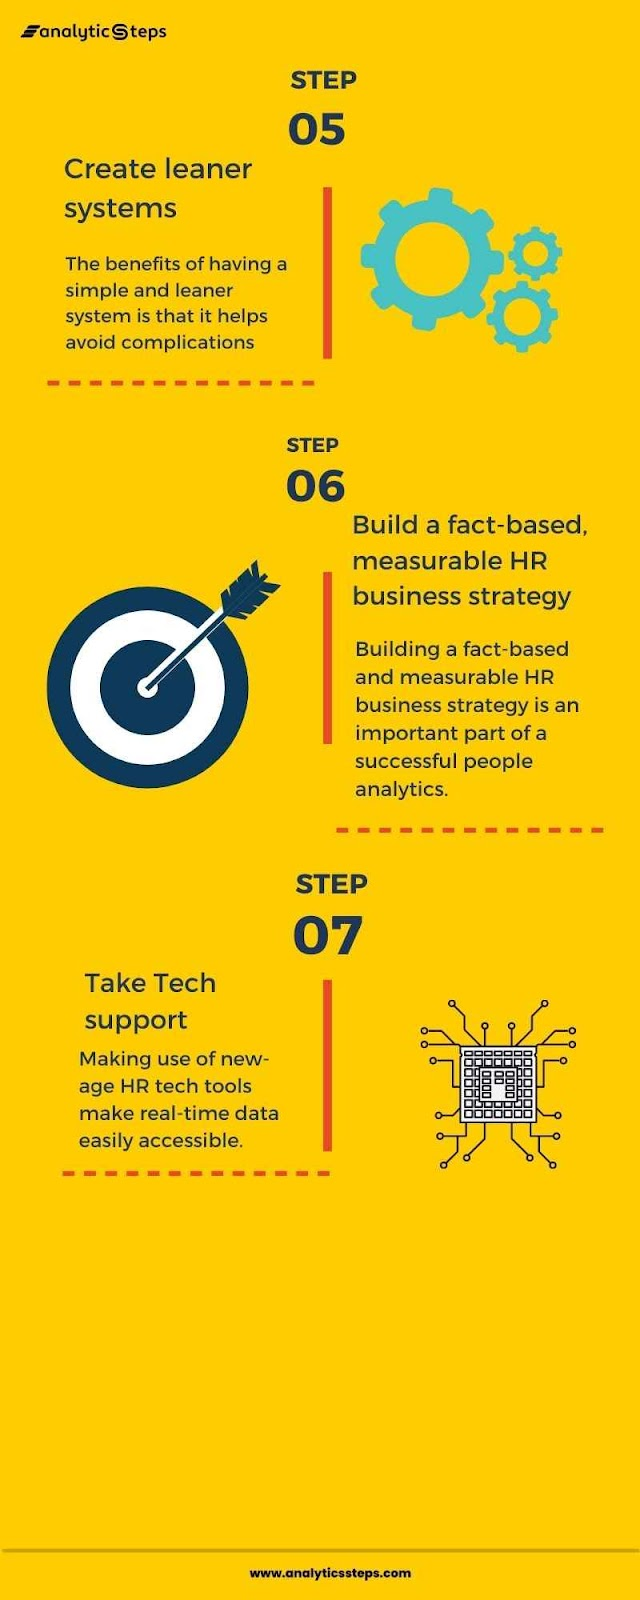 The image is an infographic that contains the steps involved in the process of people analytics.